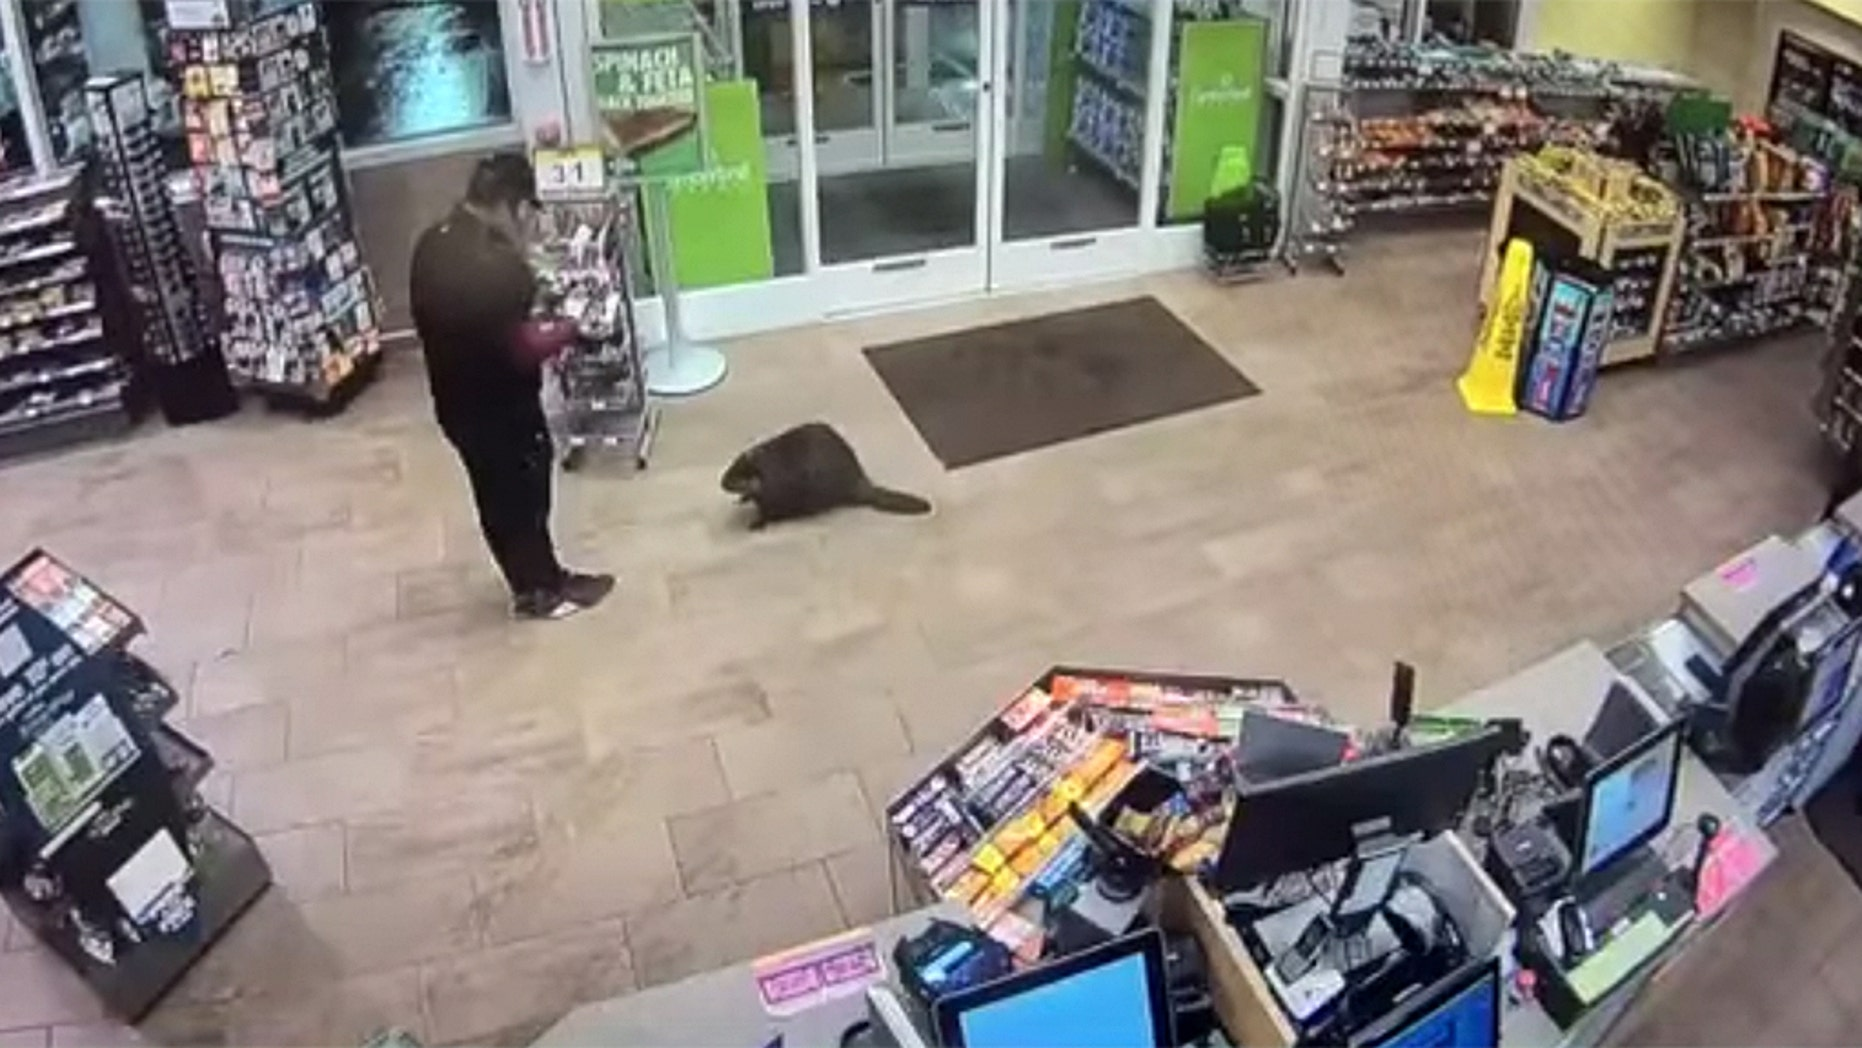 A beaver is seen inside a Cumberland Farms store in Fitchburg, Mass.